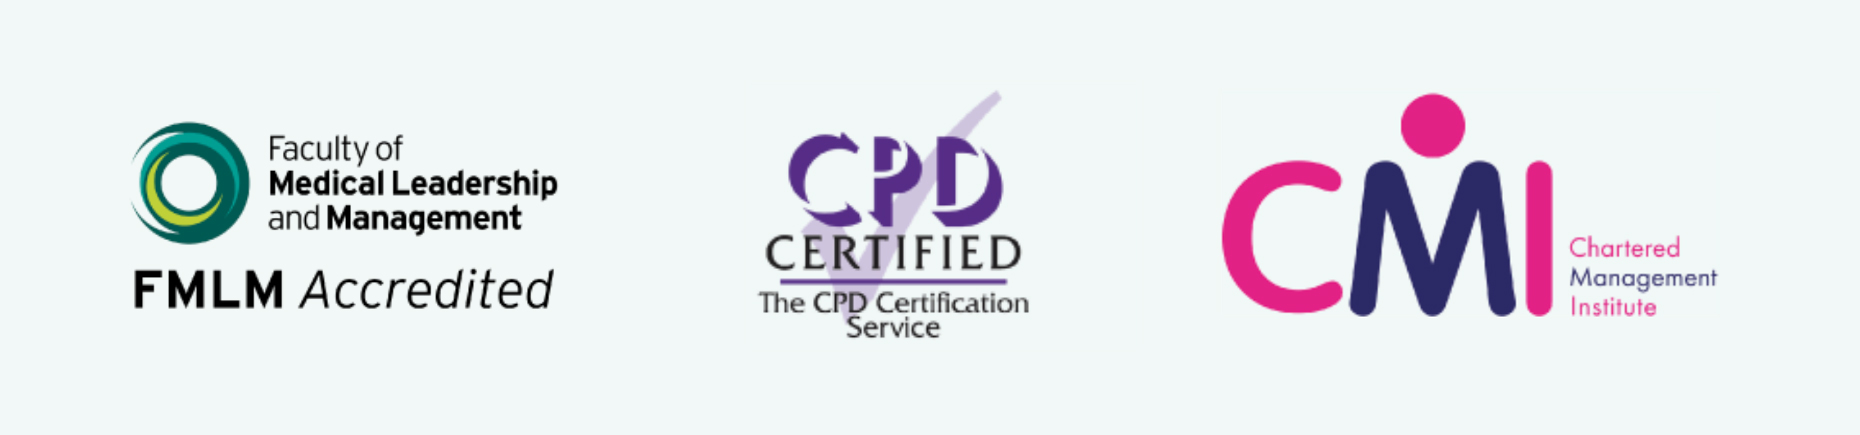 CPD Certified, FMLM Accredited, CMI